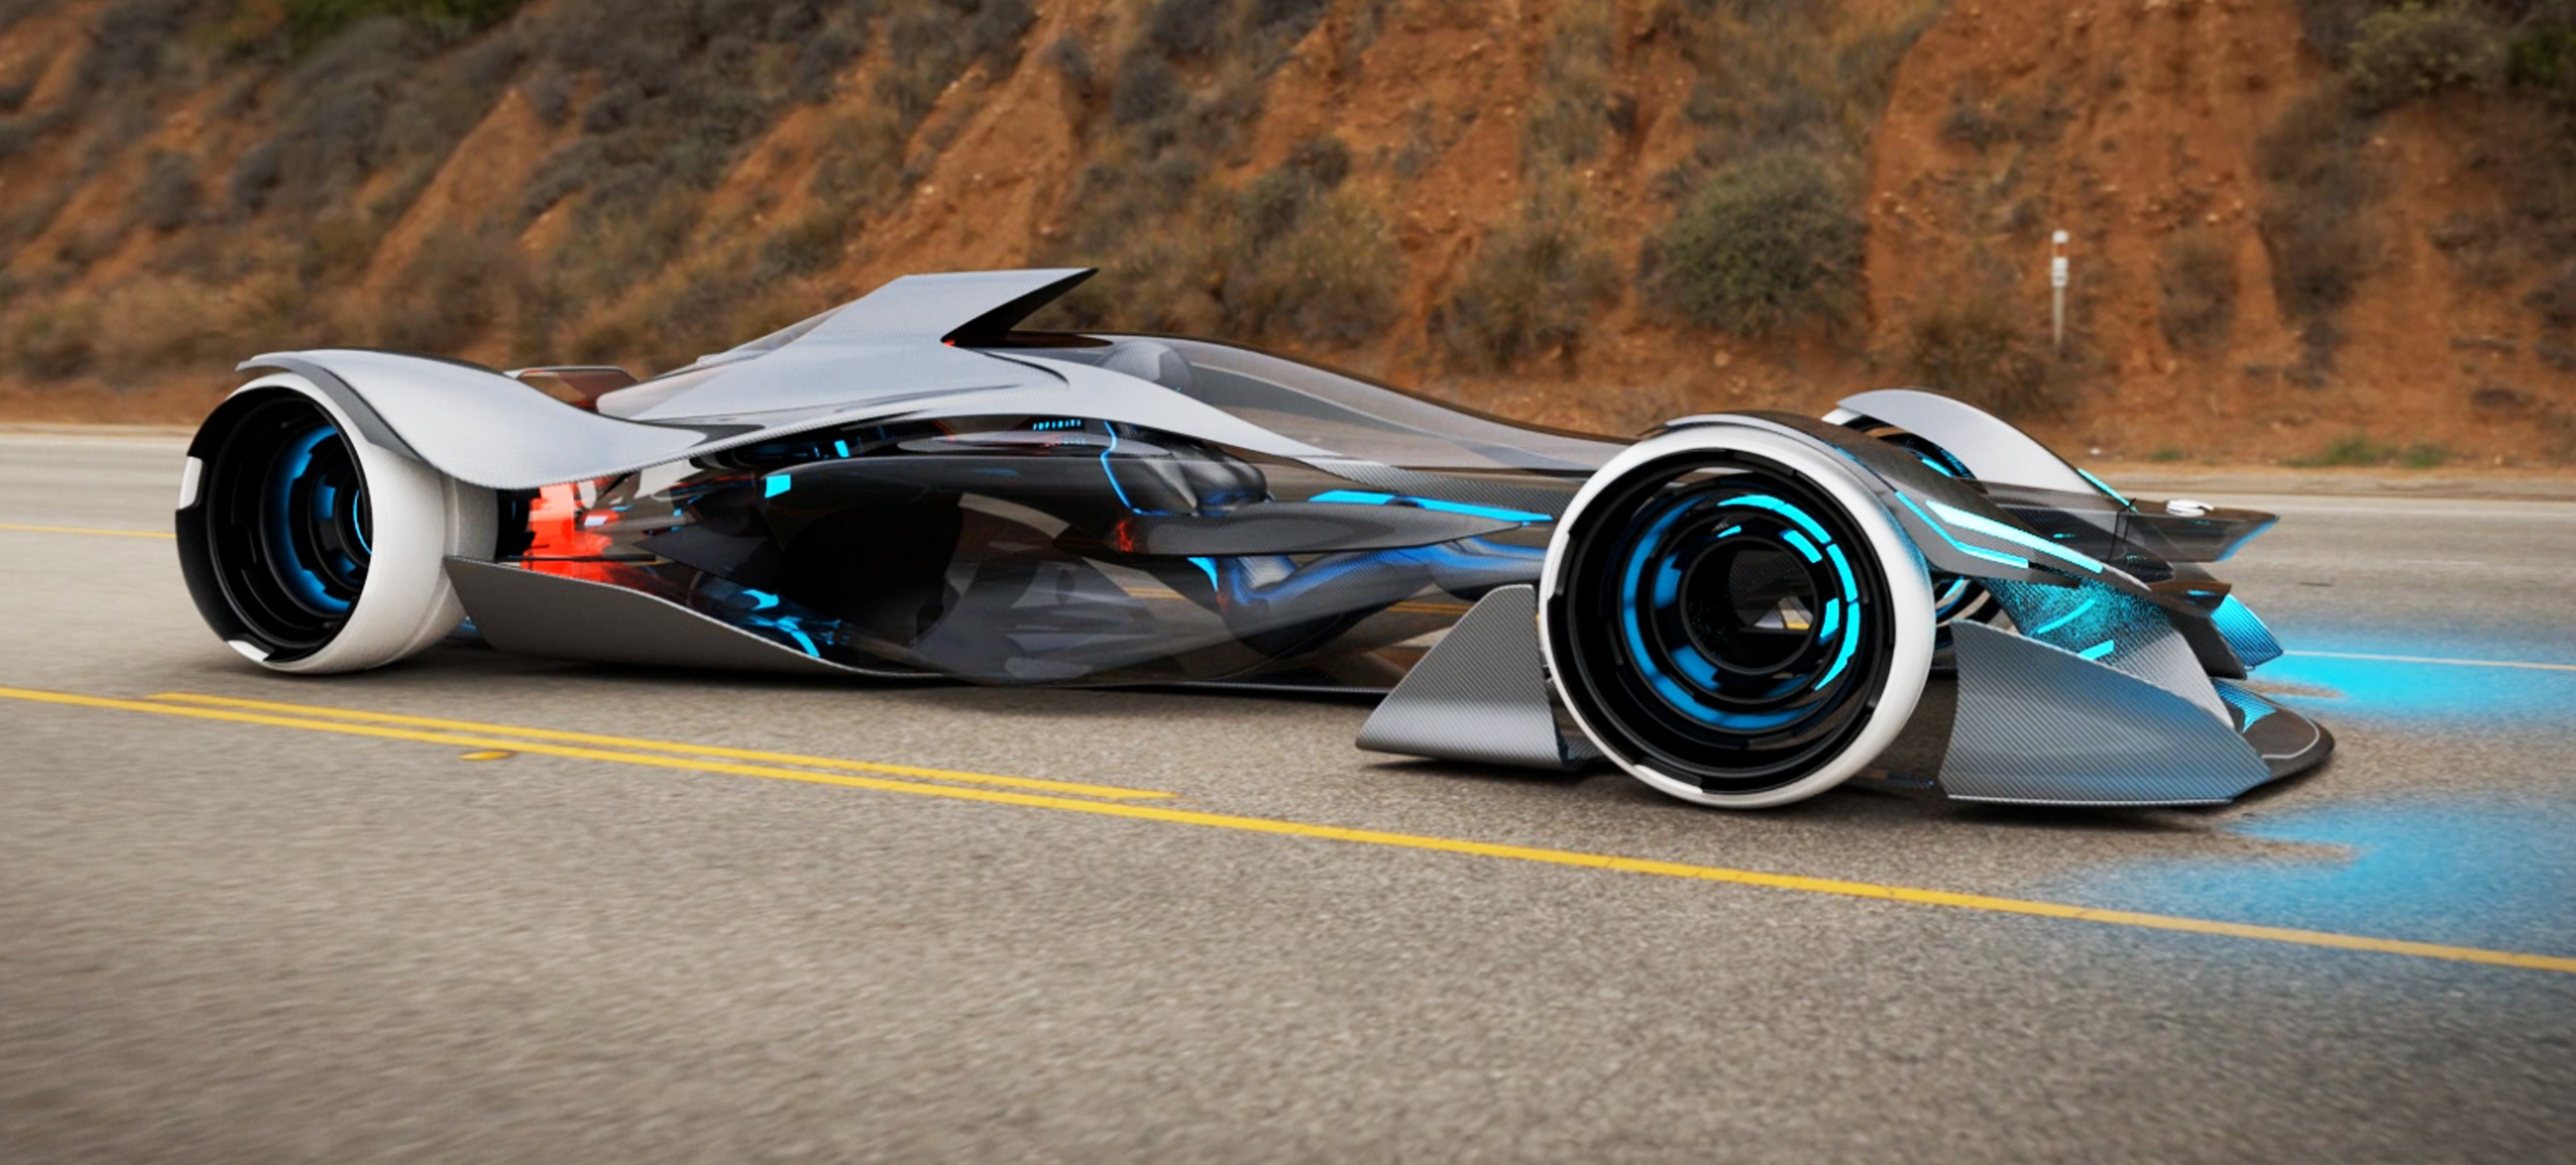 Future Cars 2020 >> Future Car Technology We D Like To See In 2020 Carwow